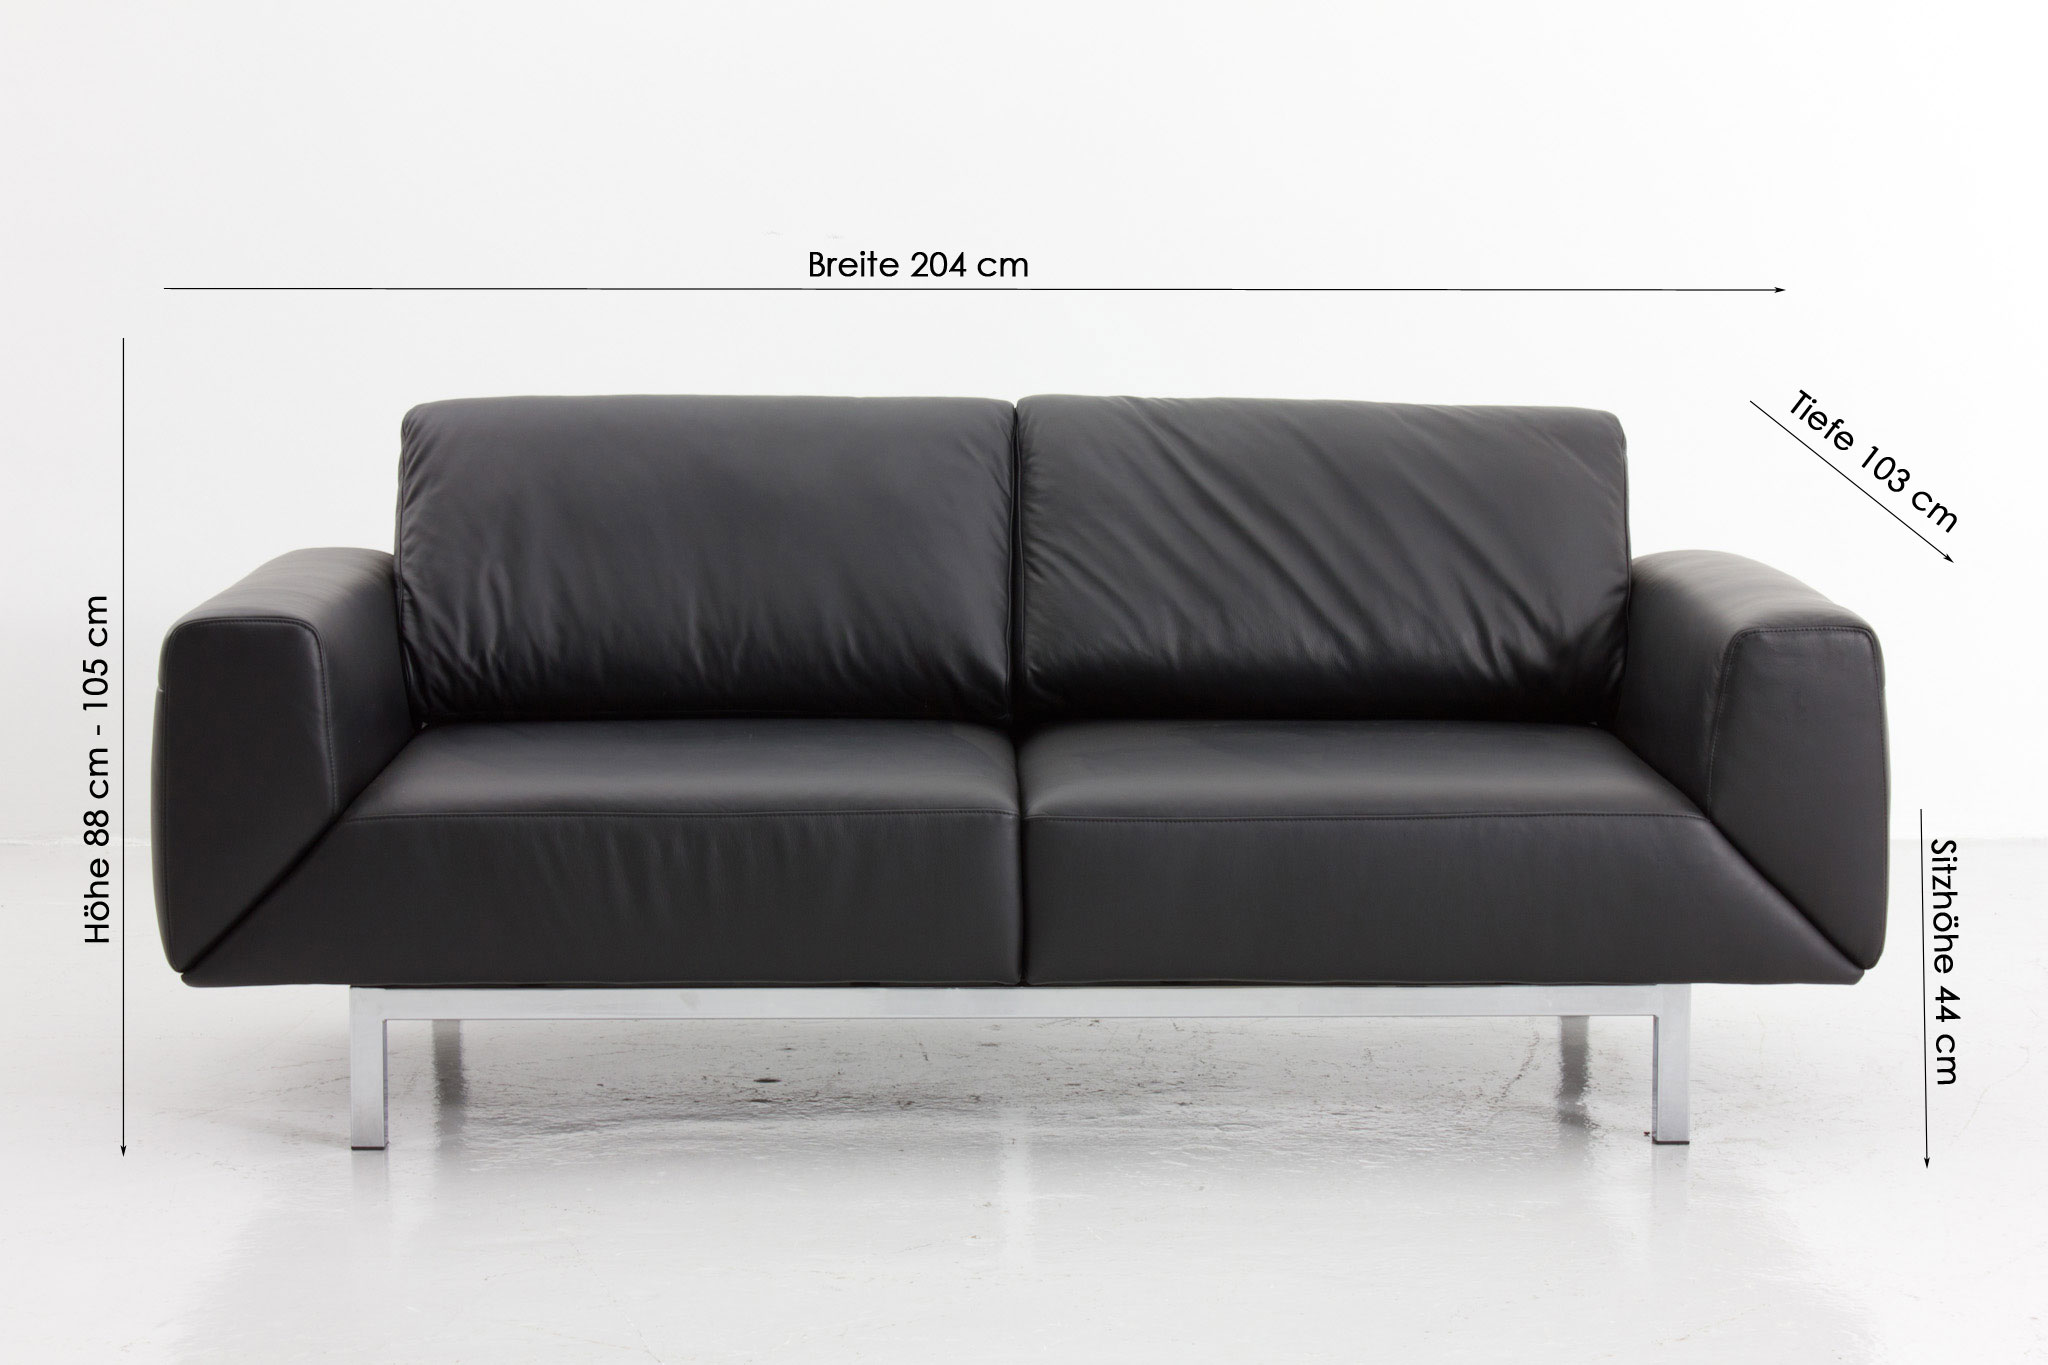 Schillig Sofa Perfect Furniture In A House Or In An Office: Stunning Black Metal FRame Minimalist Style Schillig Sofa Design